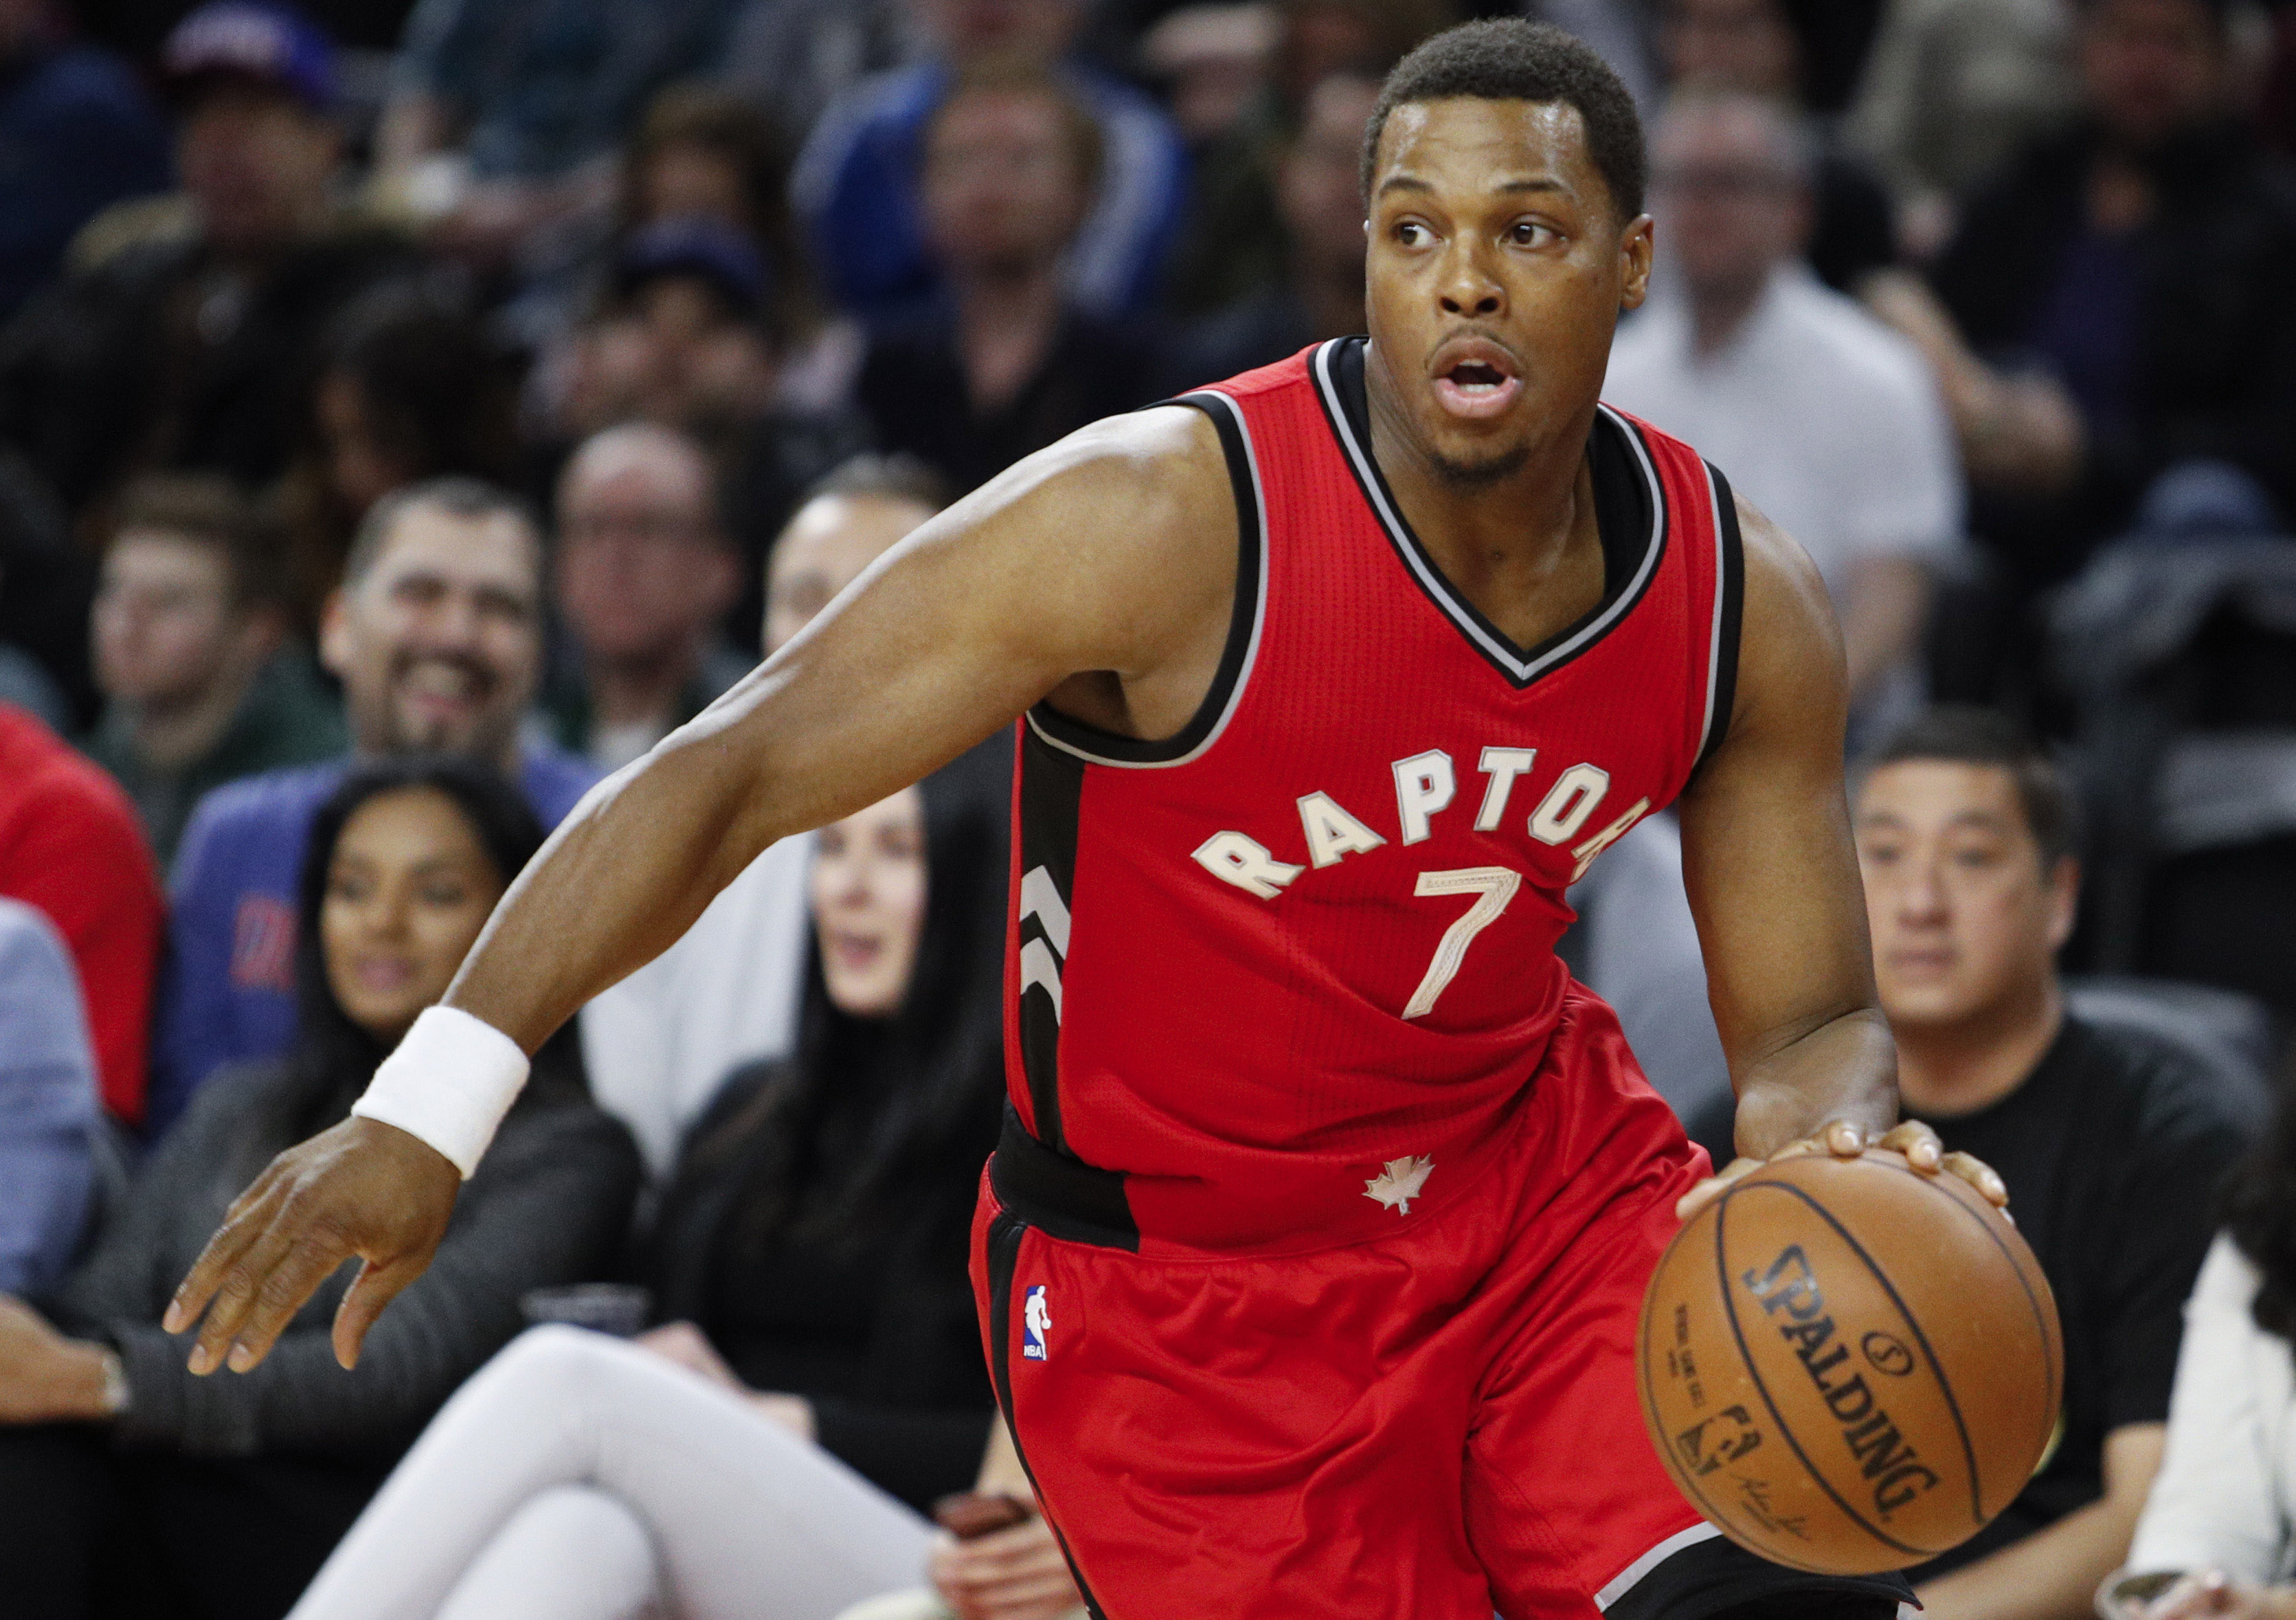 Raptors survive late Bucks comeback for Game 2 win